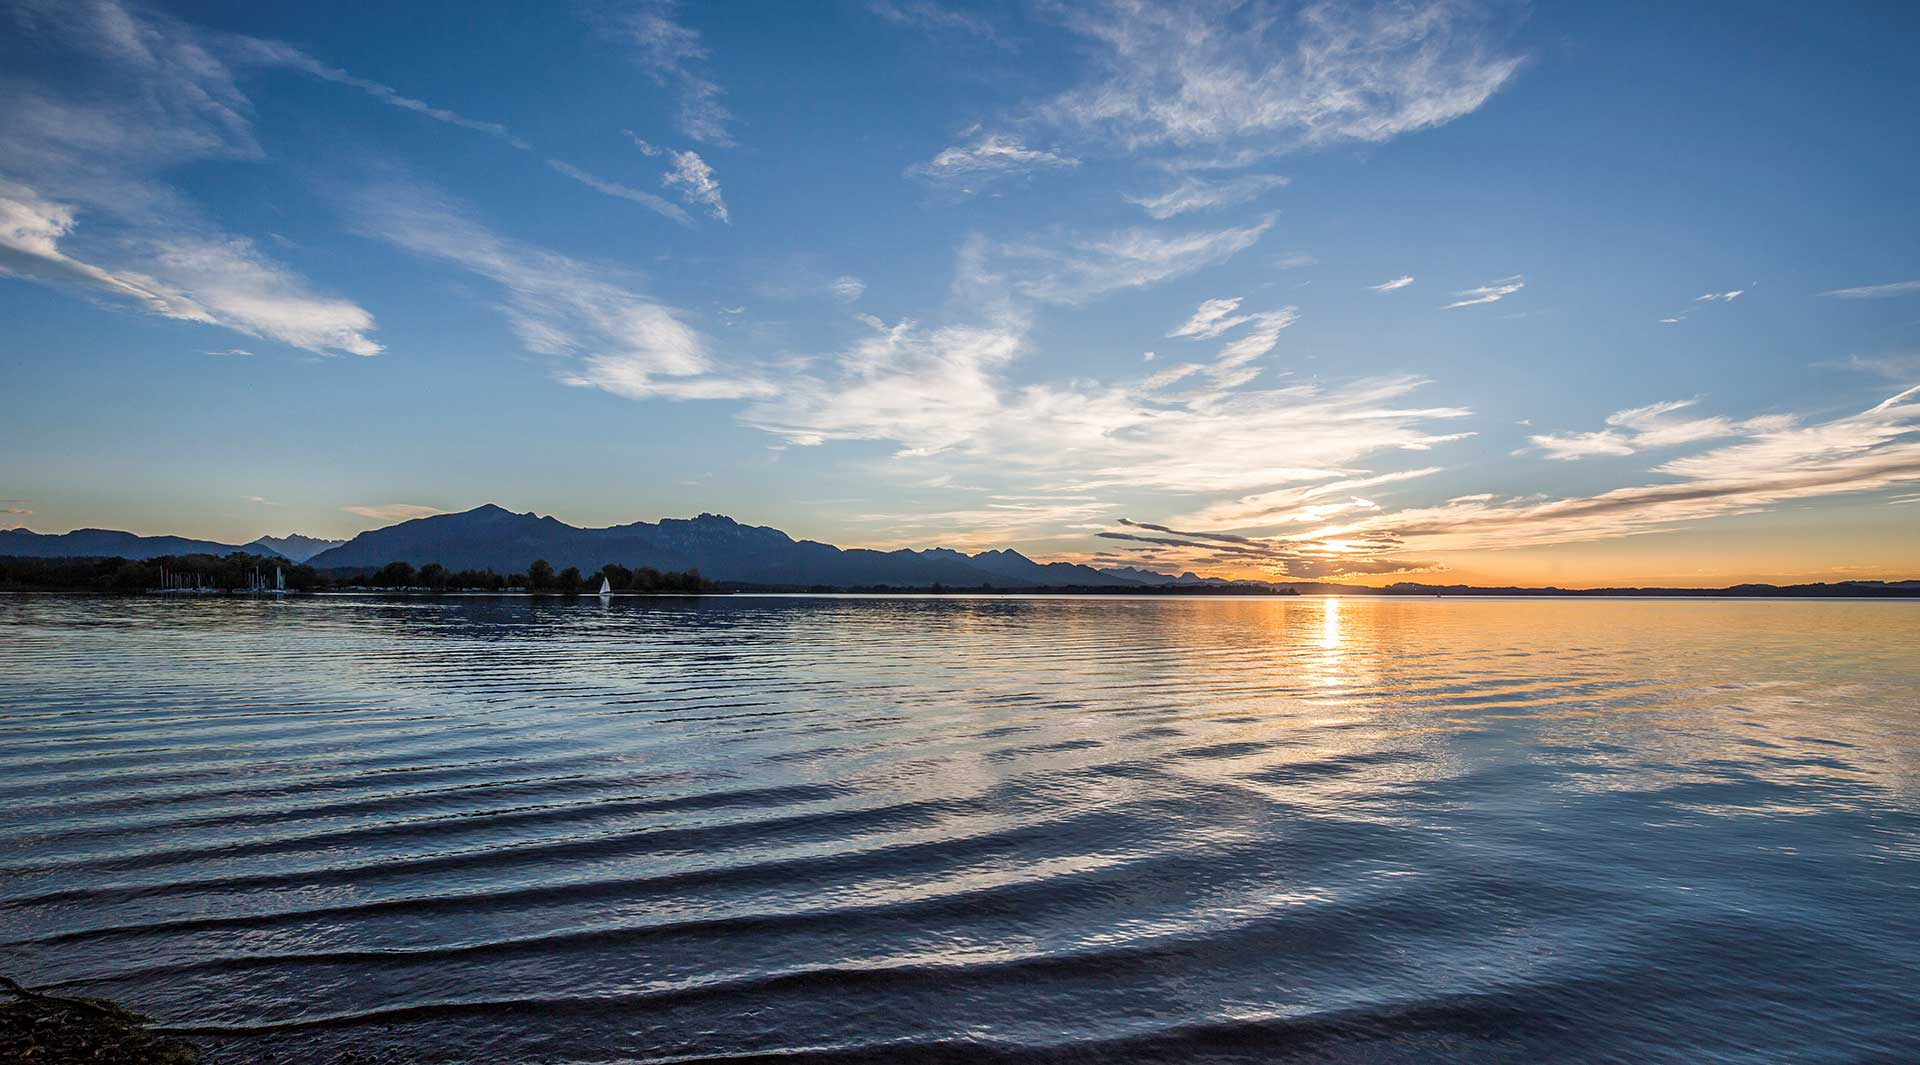 Chiemsee - Copyright by Chiemgau Tourismus e. V.